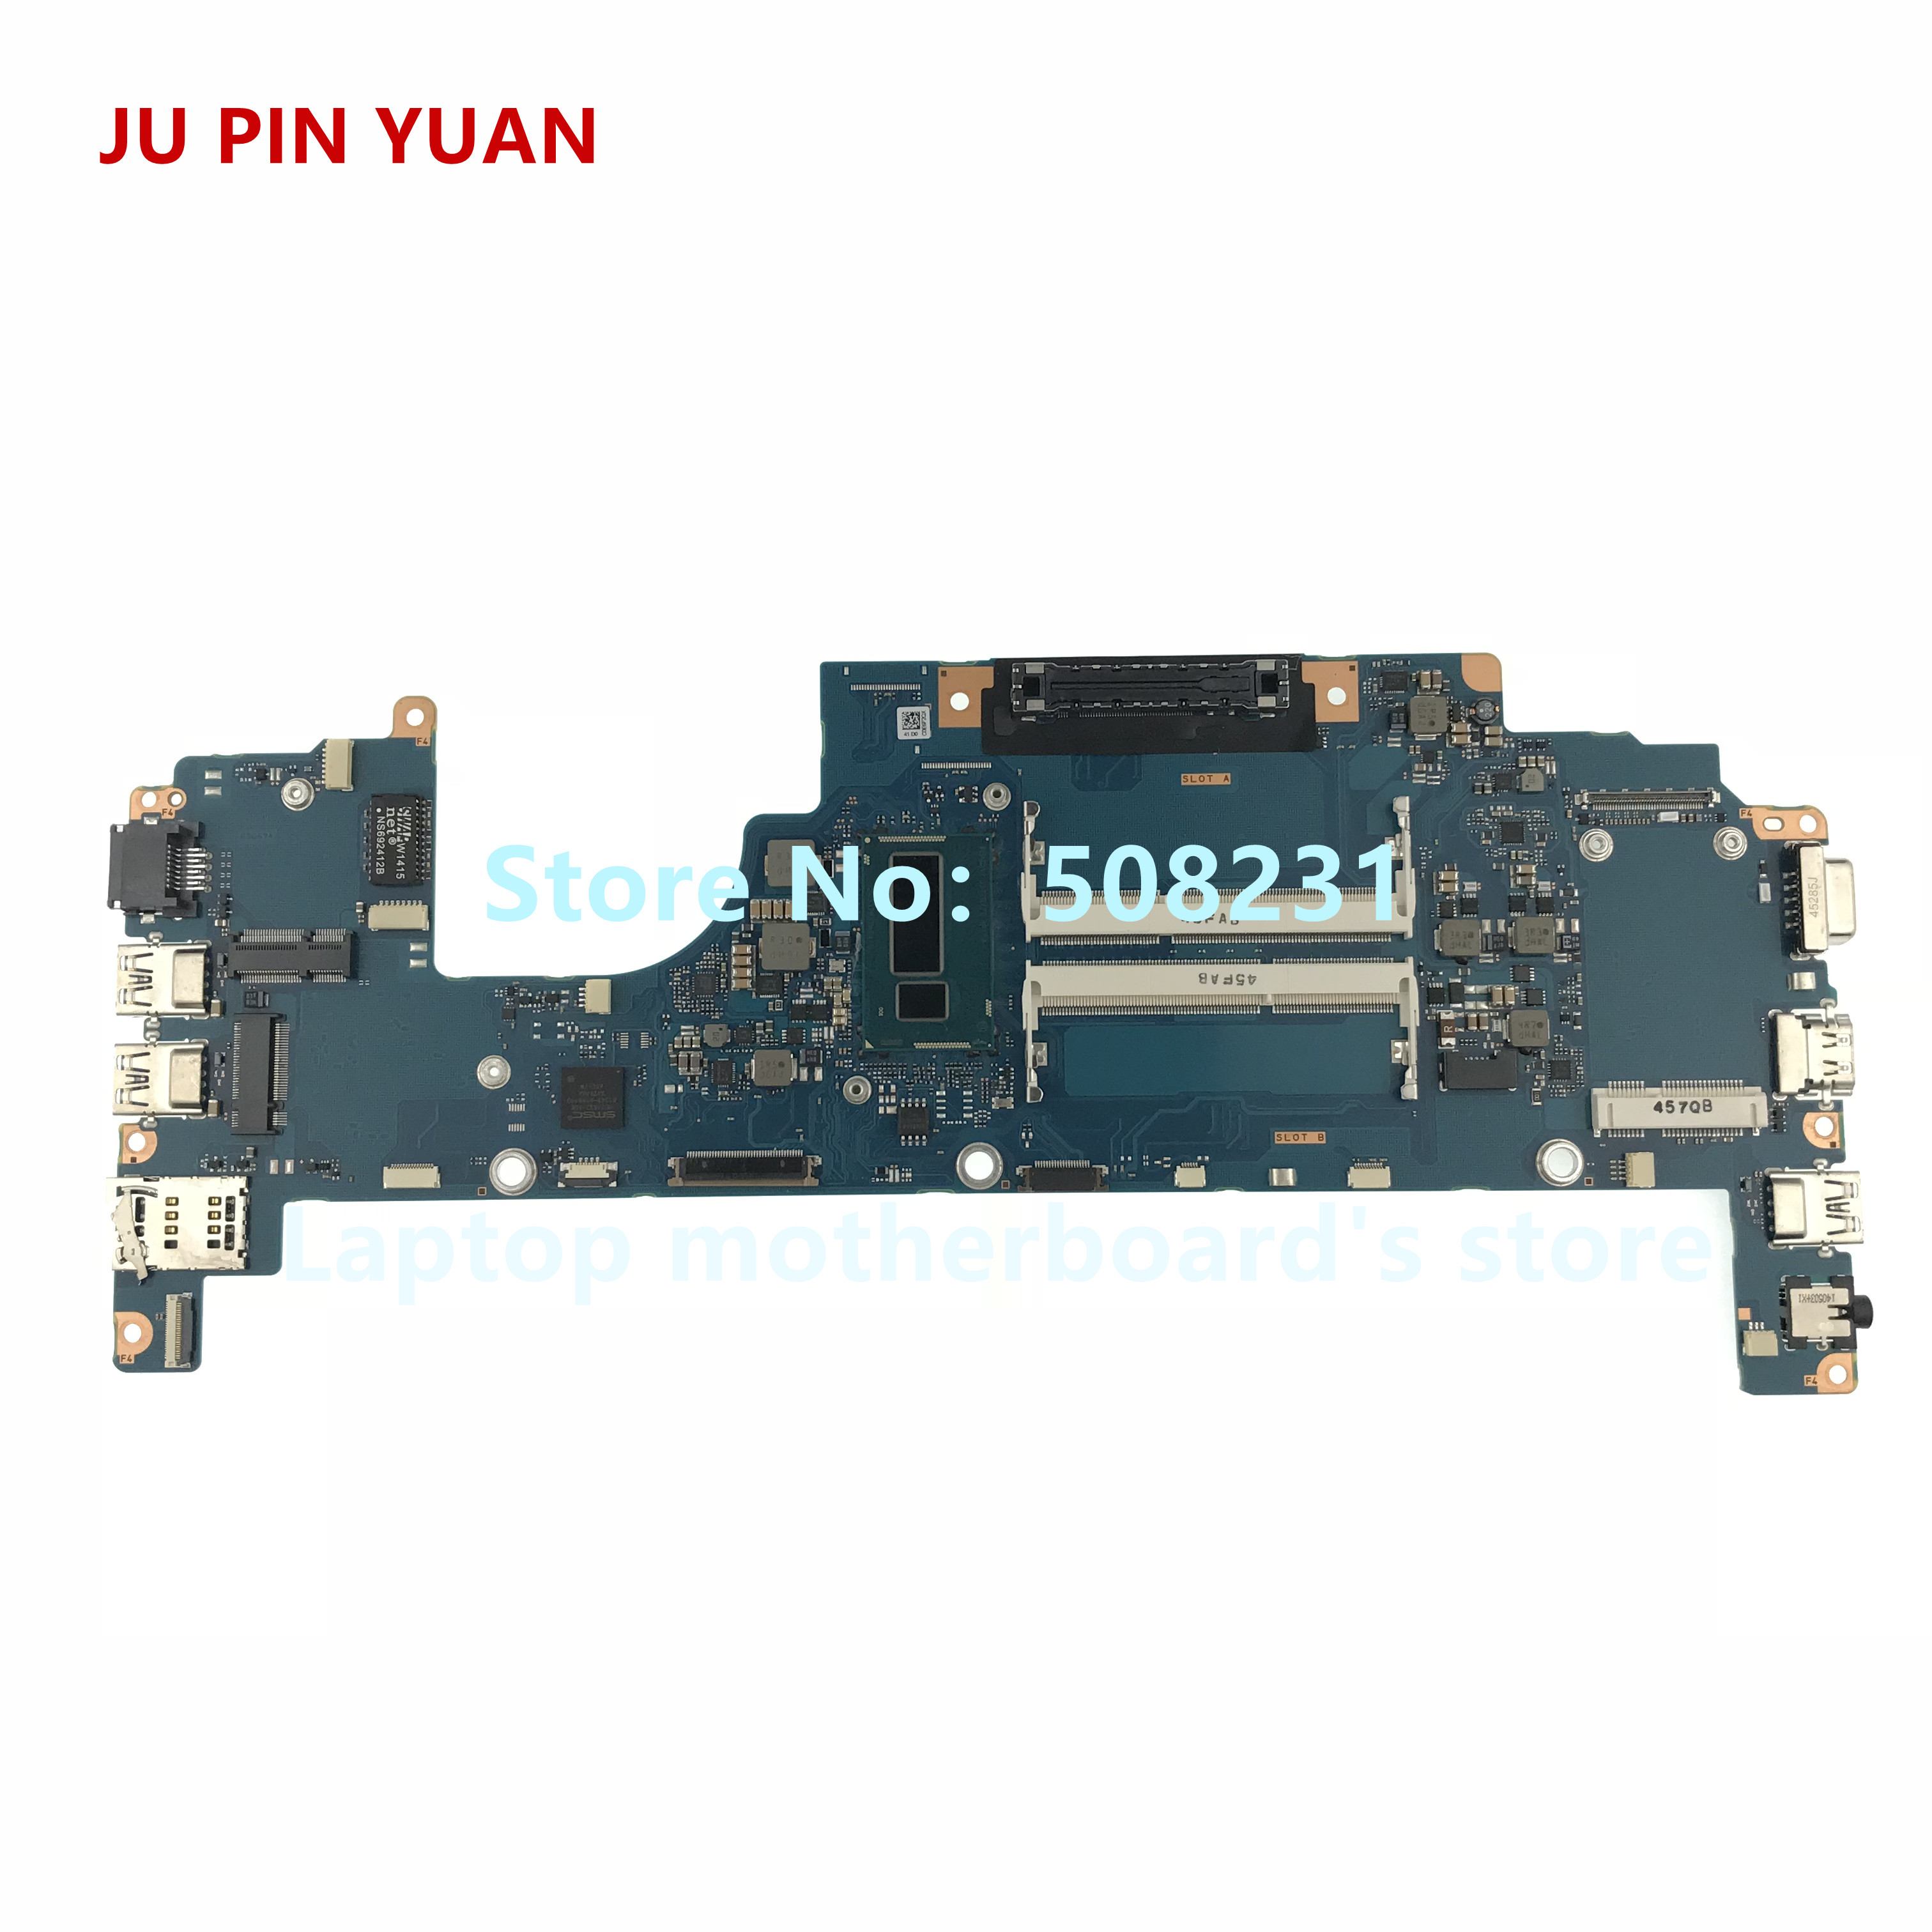 JU PIN YUAN FAUXSY3 A3667A mainboard For Toshiba Portege Z30 Z30-A laptop Motherboard with SR170 i5-4200U workingJU PIN YUAN FAUXSY3 A3667A mainboard For Toshiba Portege Z30 Z30-A laptop Motherboard with SR170 i5-4200U working